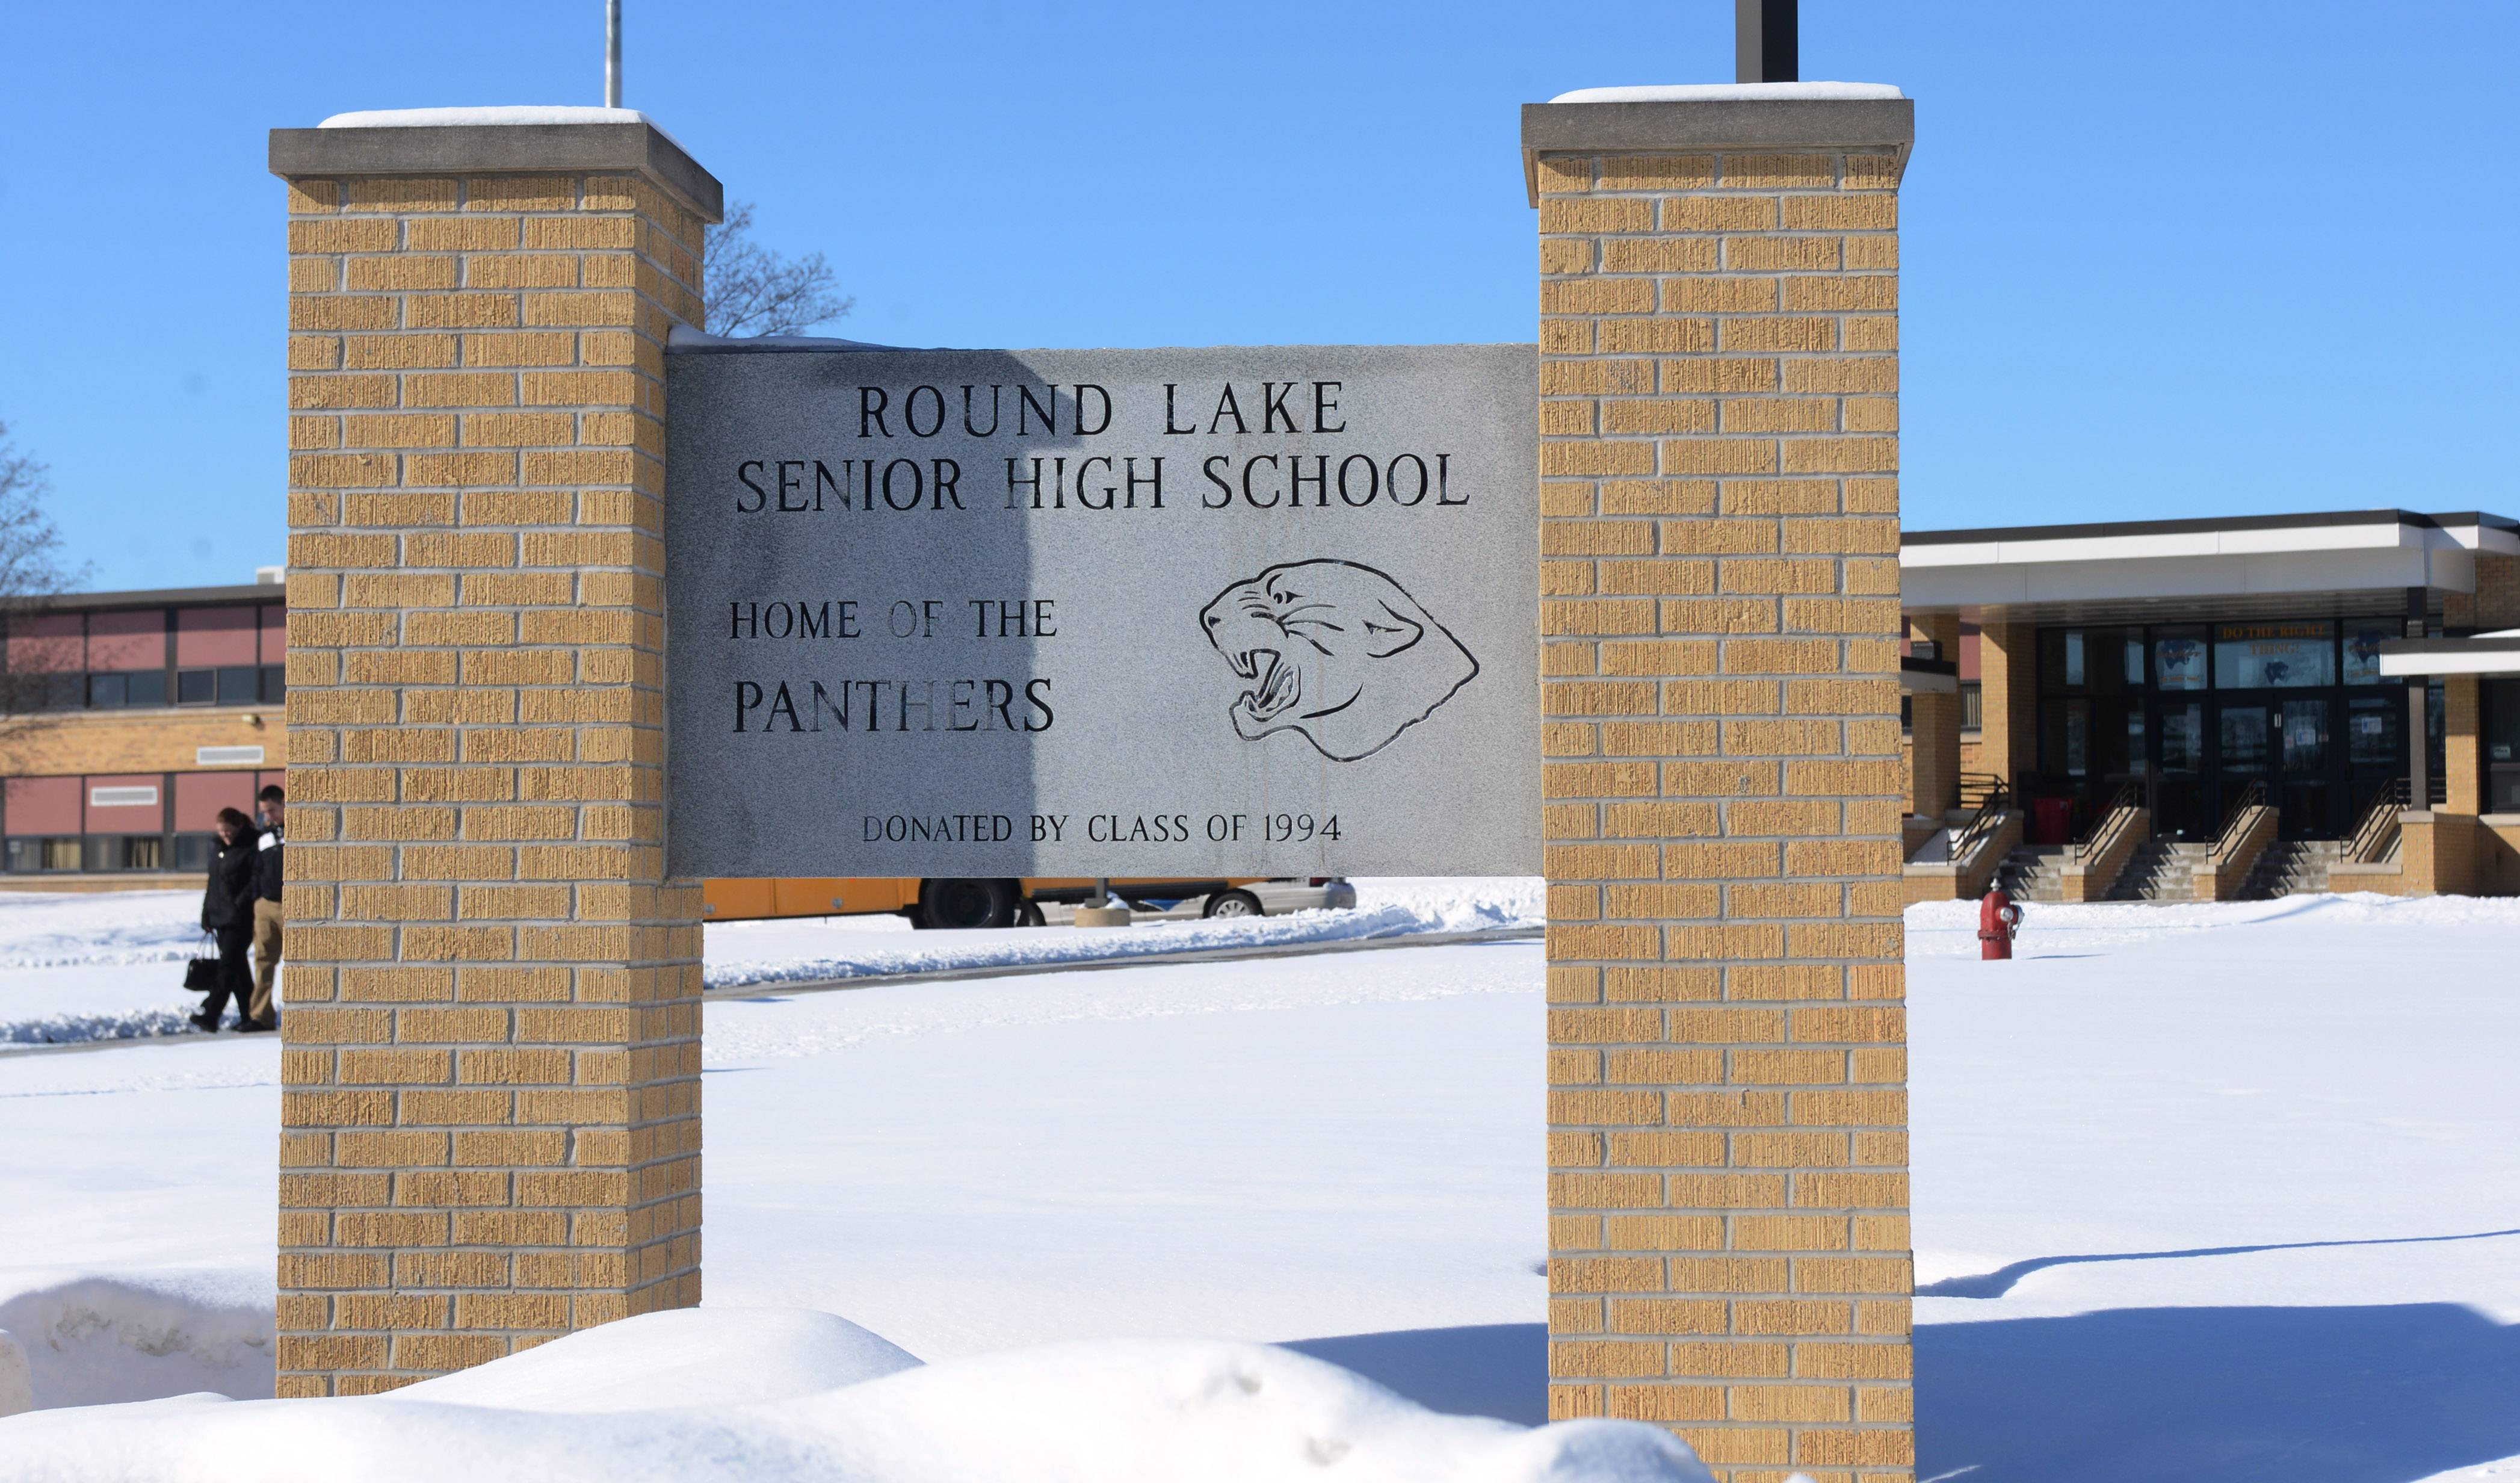 Round Lake Area Unit District 116 supporters plan to discuss how to achieve a high school expansion and renovations. Voters on Tuesday rejected the district's ballot measure that sought permission to borrow $29 million for the work.